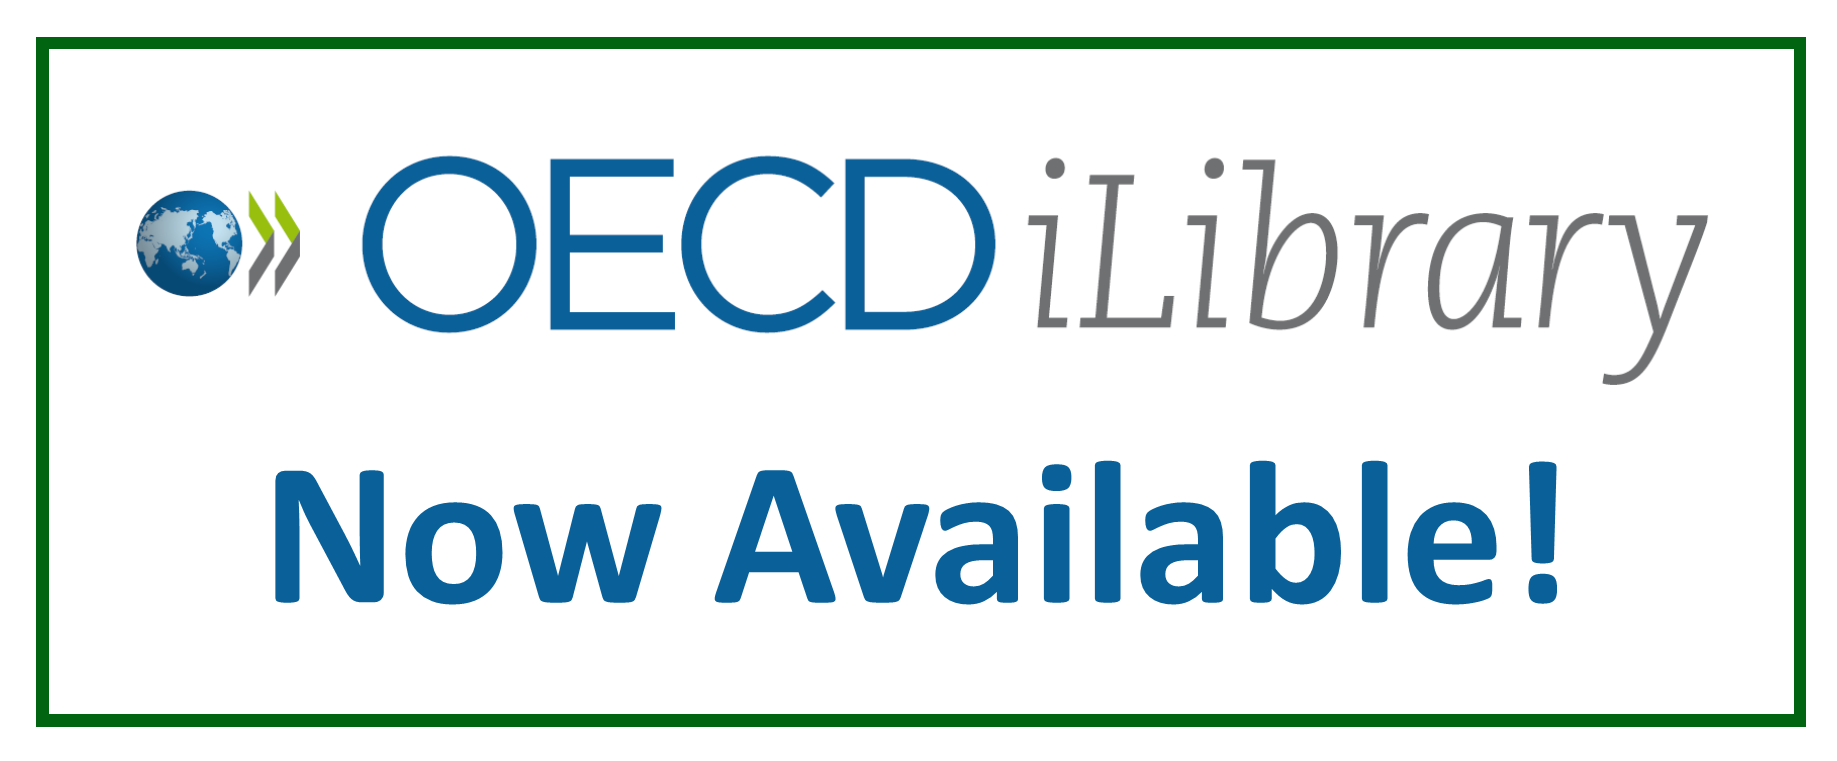 OECD iLibrary Now Available!